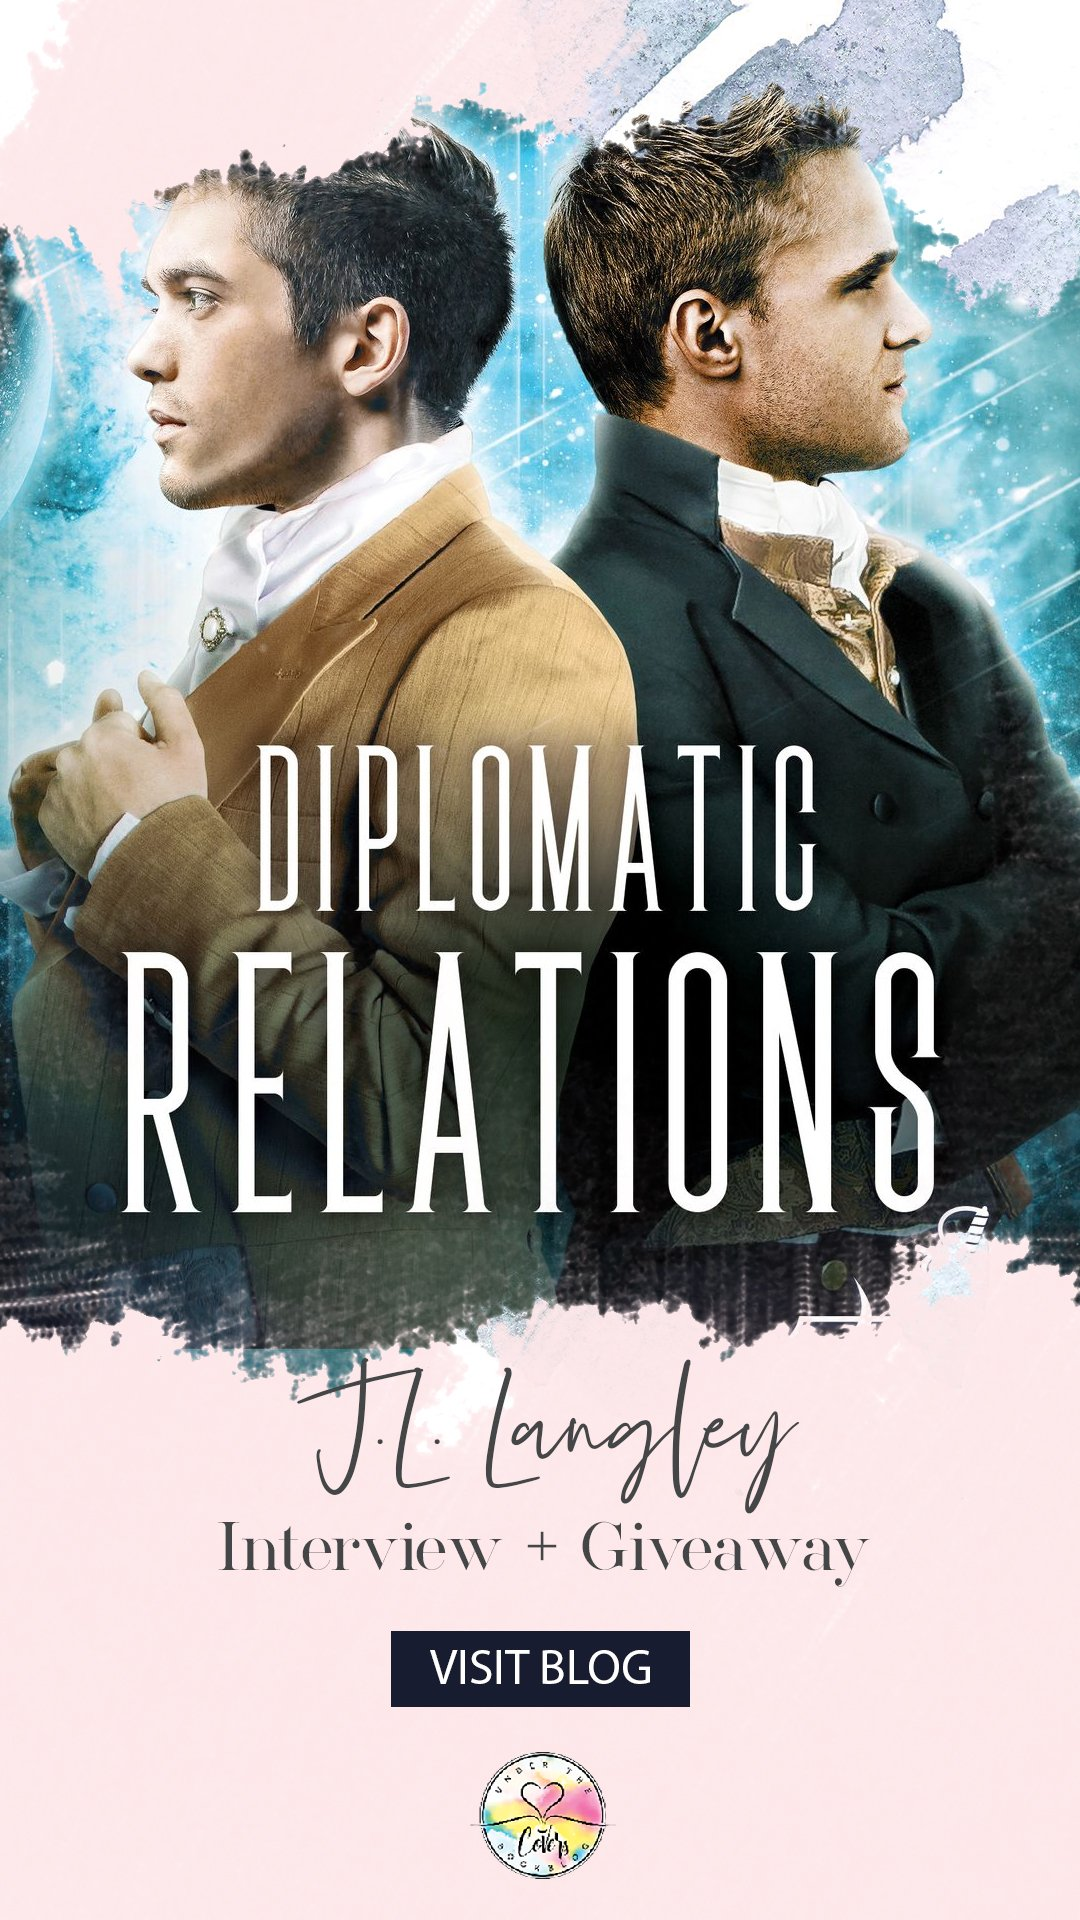 A Scandalous Affair: J.L. Langley